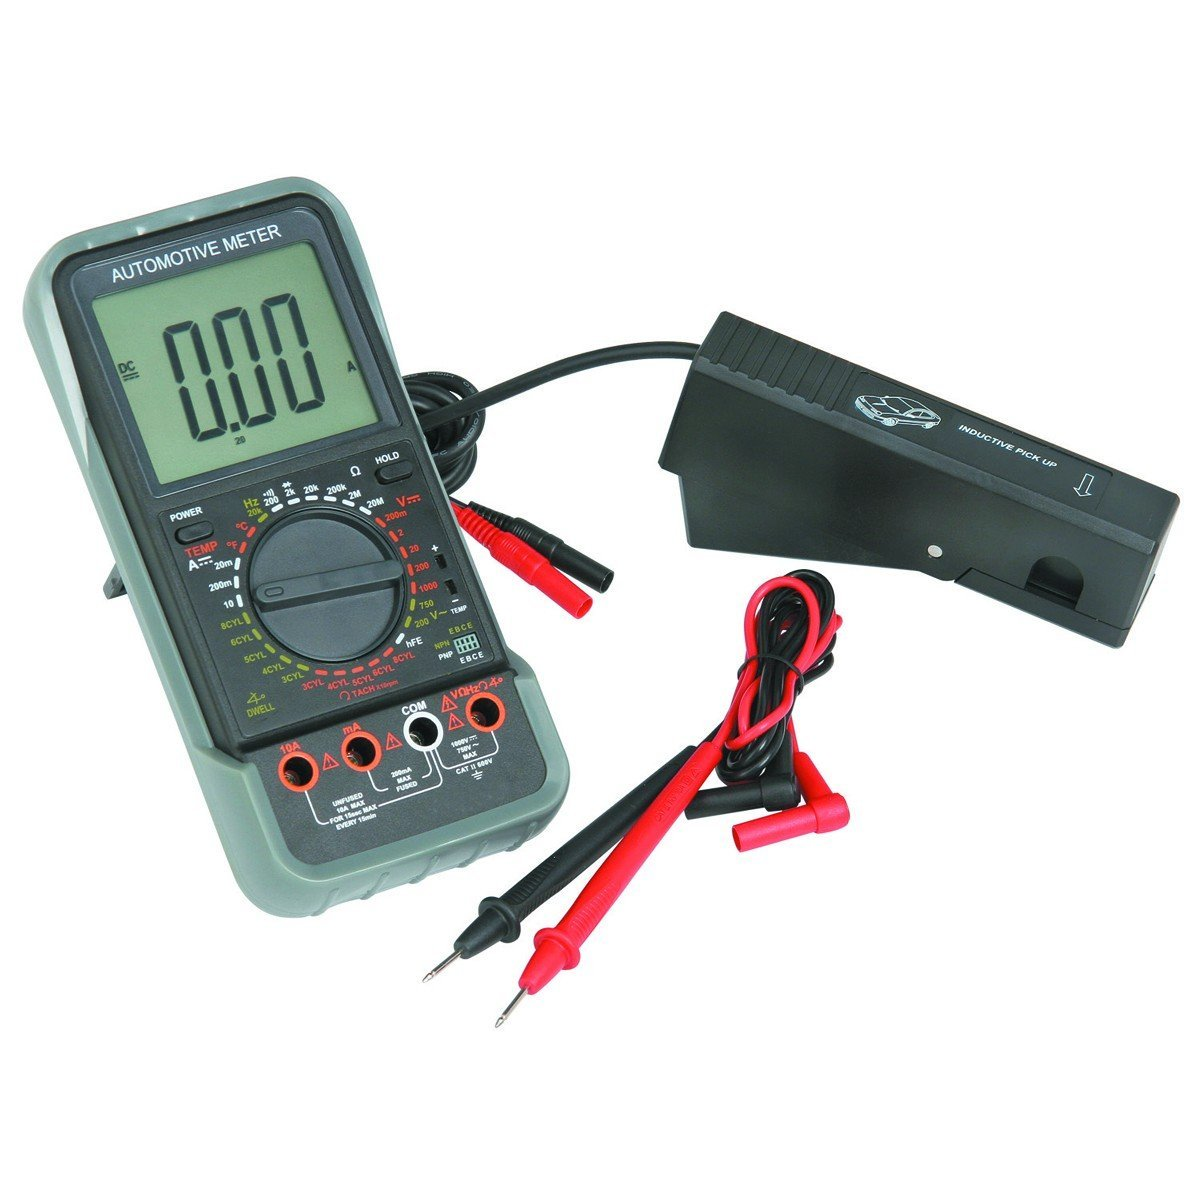 LCD Automotive Multimeter with Tachometer Kit: Black and Red Test Leads, Bead Probe, Spark Plug Signal Pickup Clamp, 9 V Battery, Hard Shell Carry Case, Automatic Shutoff